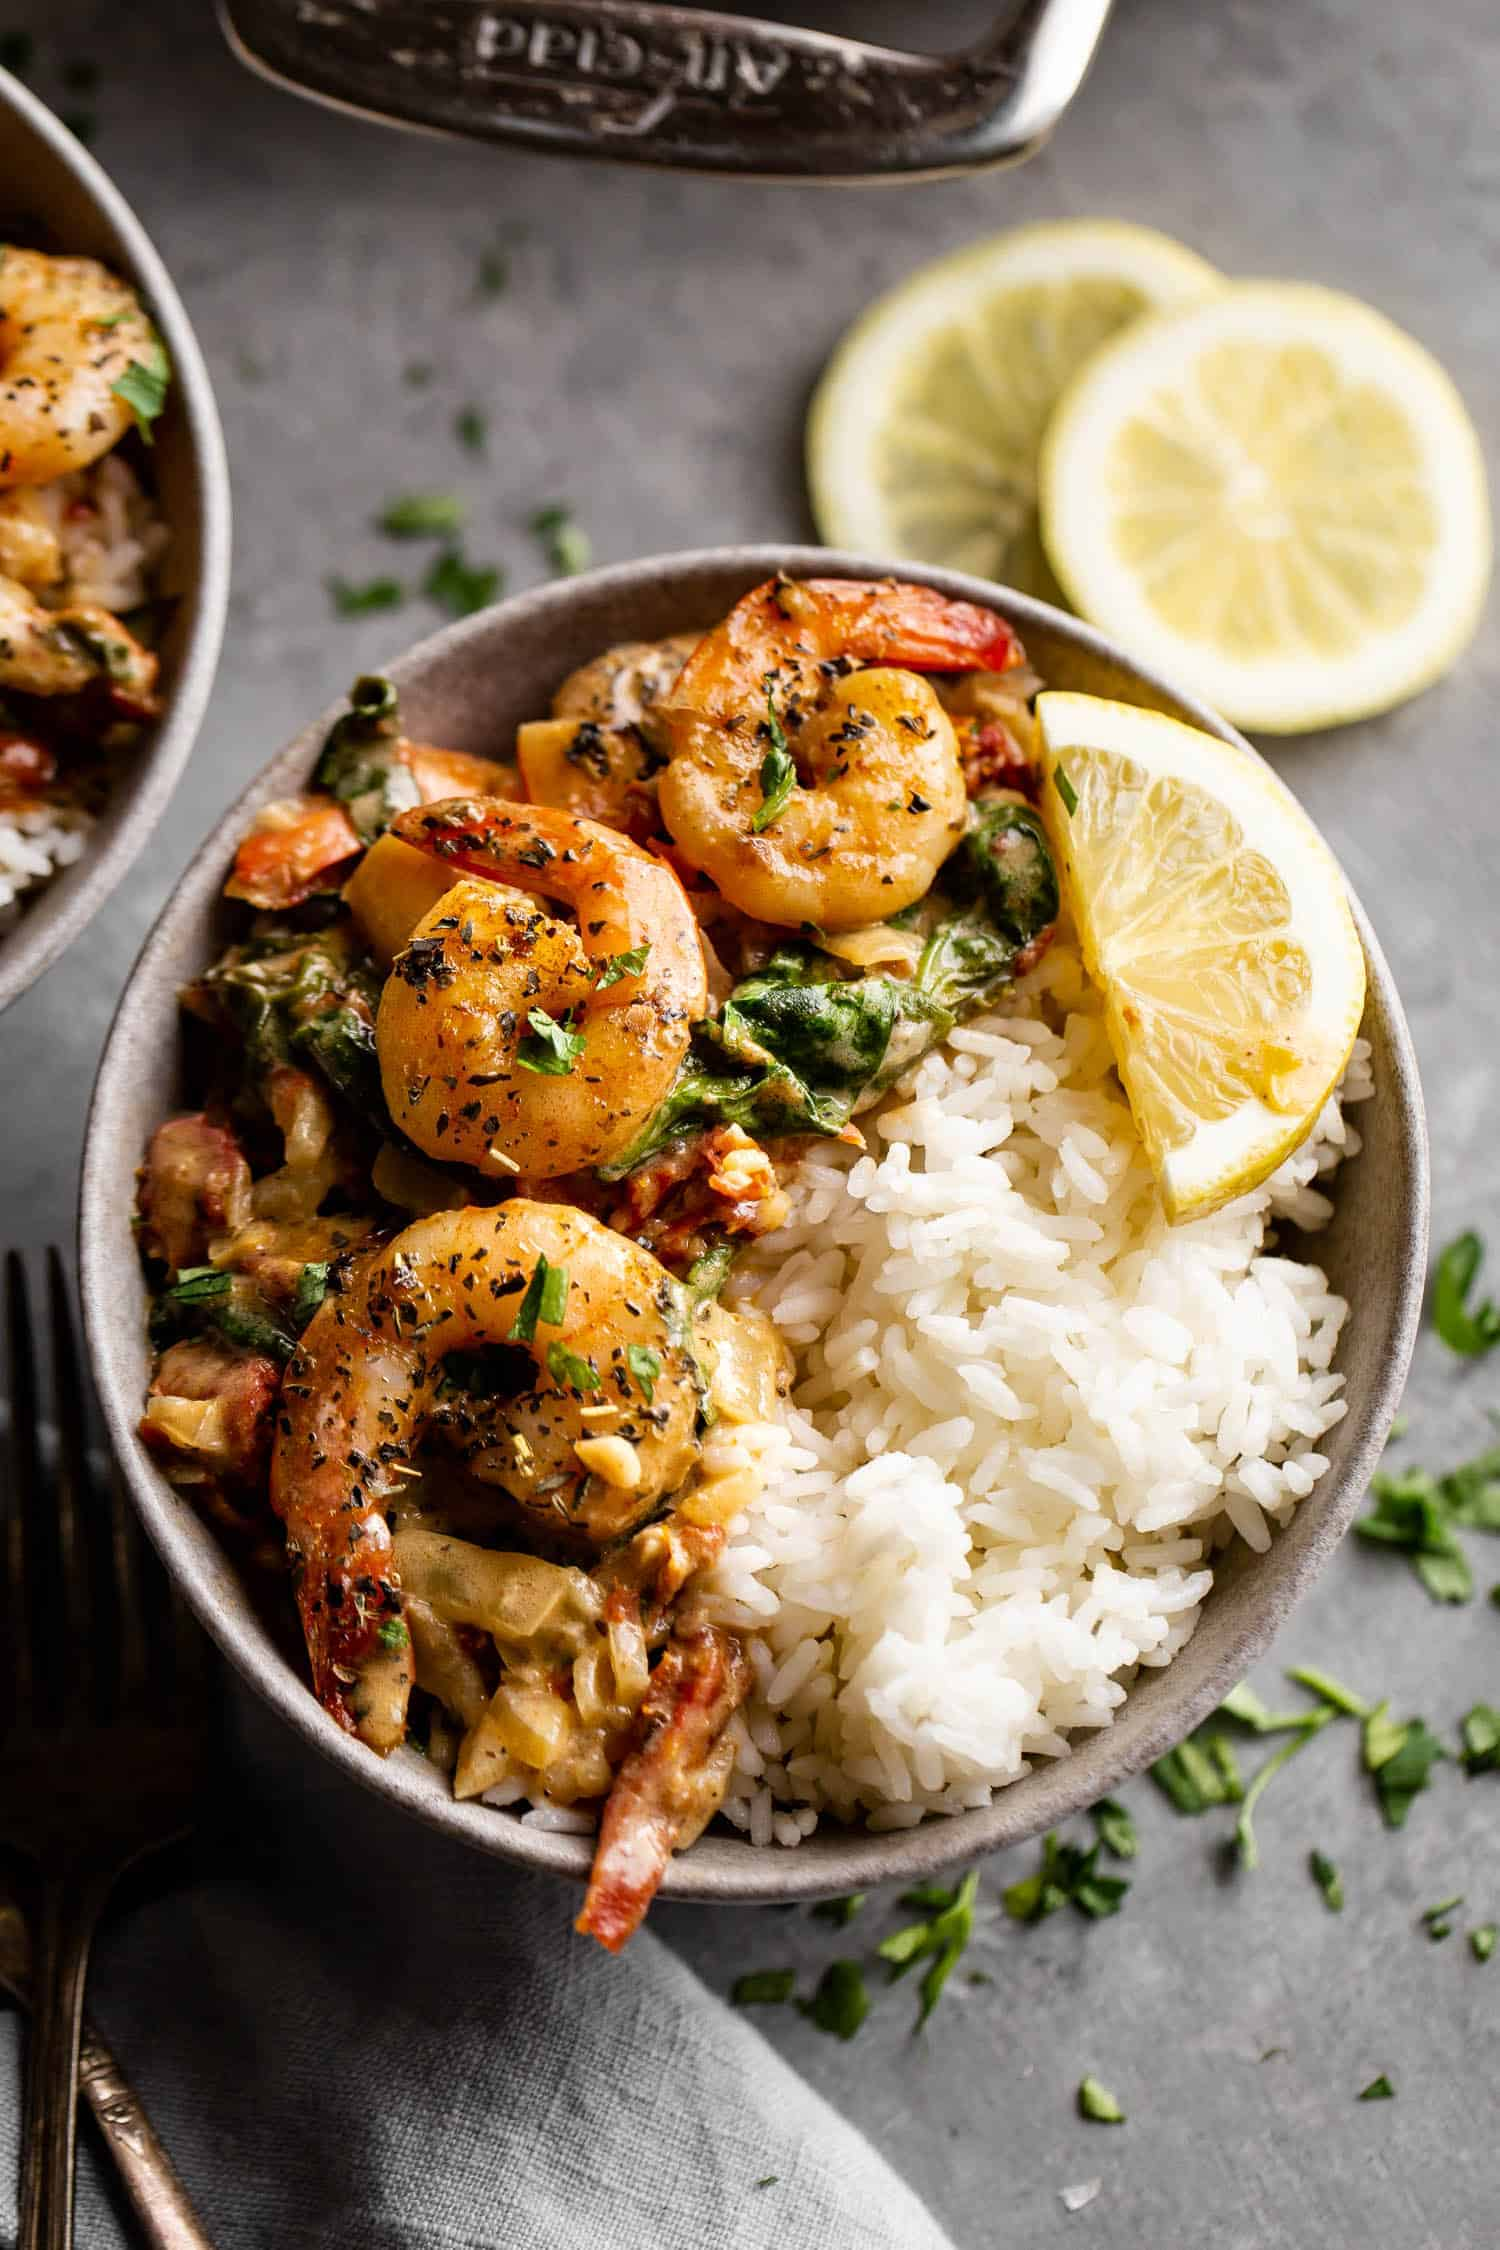 garlic shrimp in a bowl with white rice and lemon slices